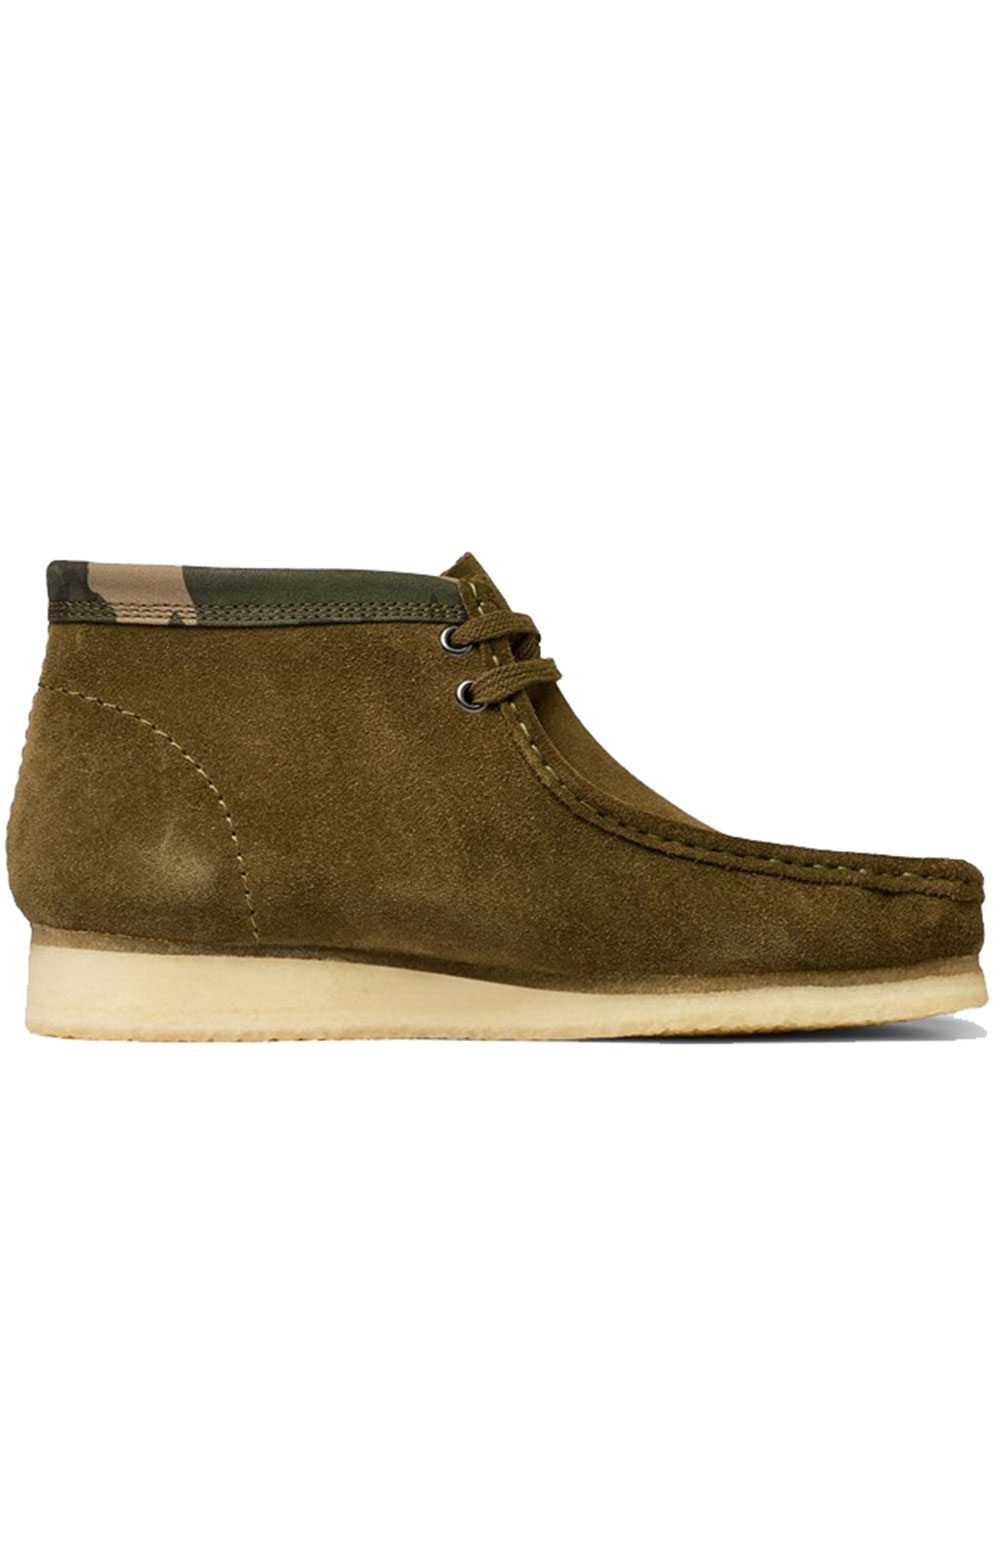 (26146168) Wallabee Boot - Olive Camo